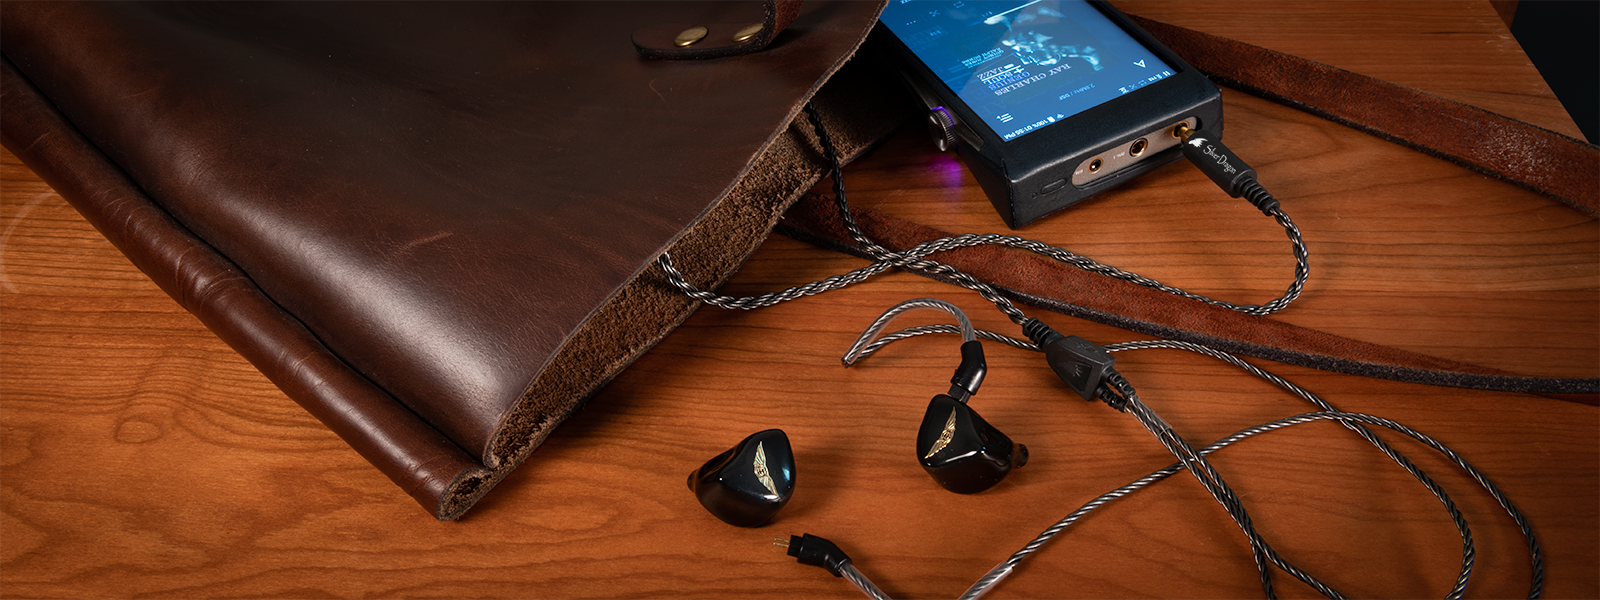 Legend X IEM with Silver Dragon Cable and Astell&Kern SE180 DAP